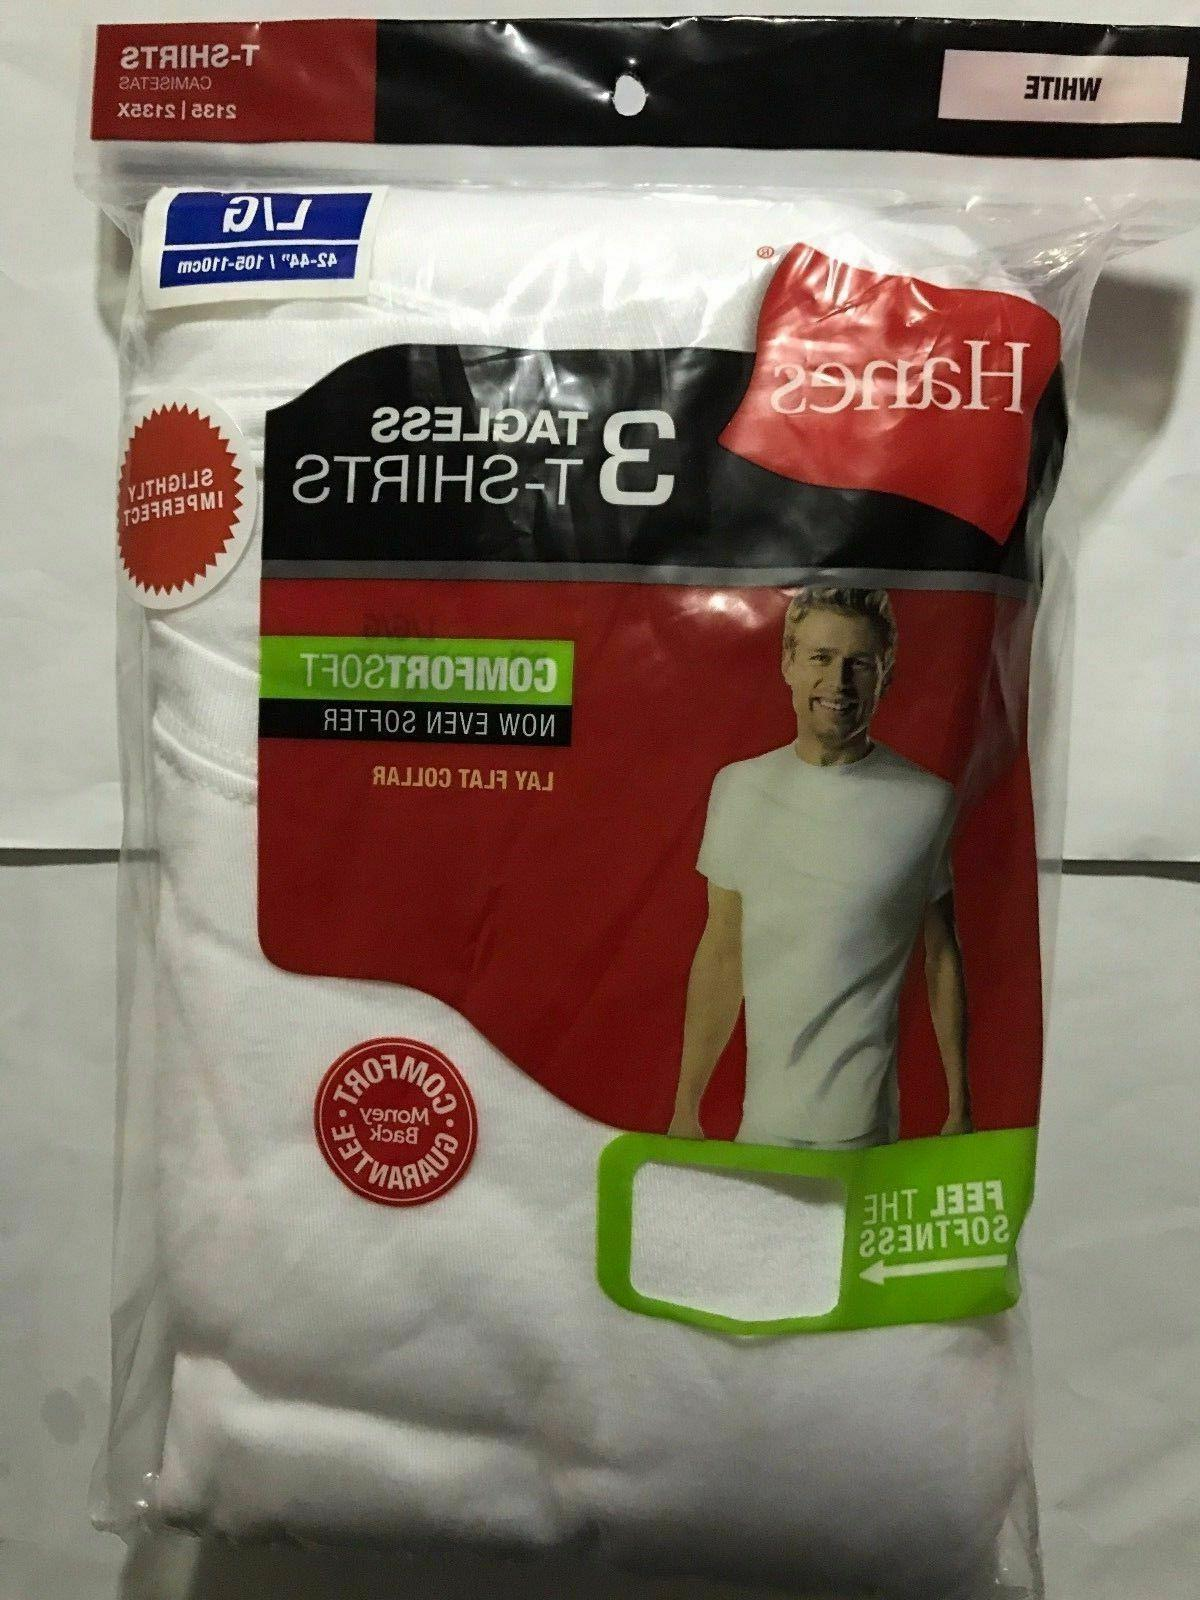 Hanes t shirt White Undershirt 6 Pack Comfort Soft Tagless M